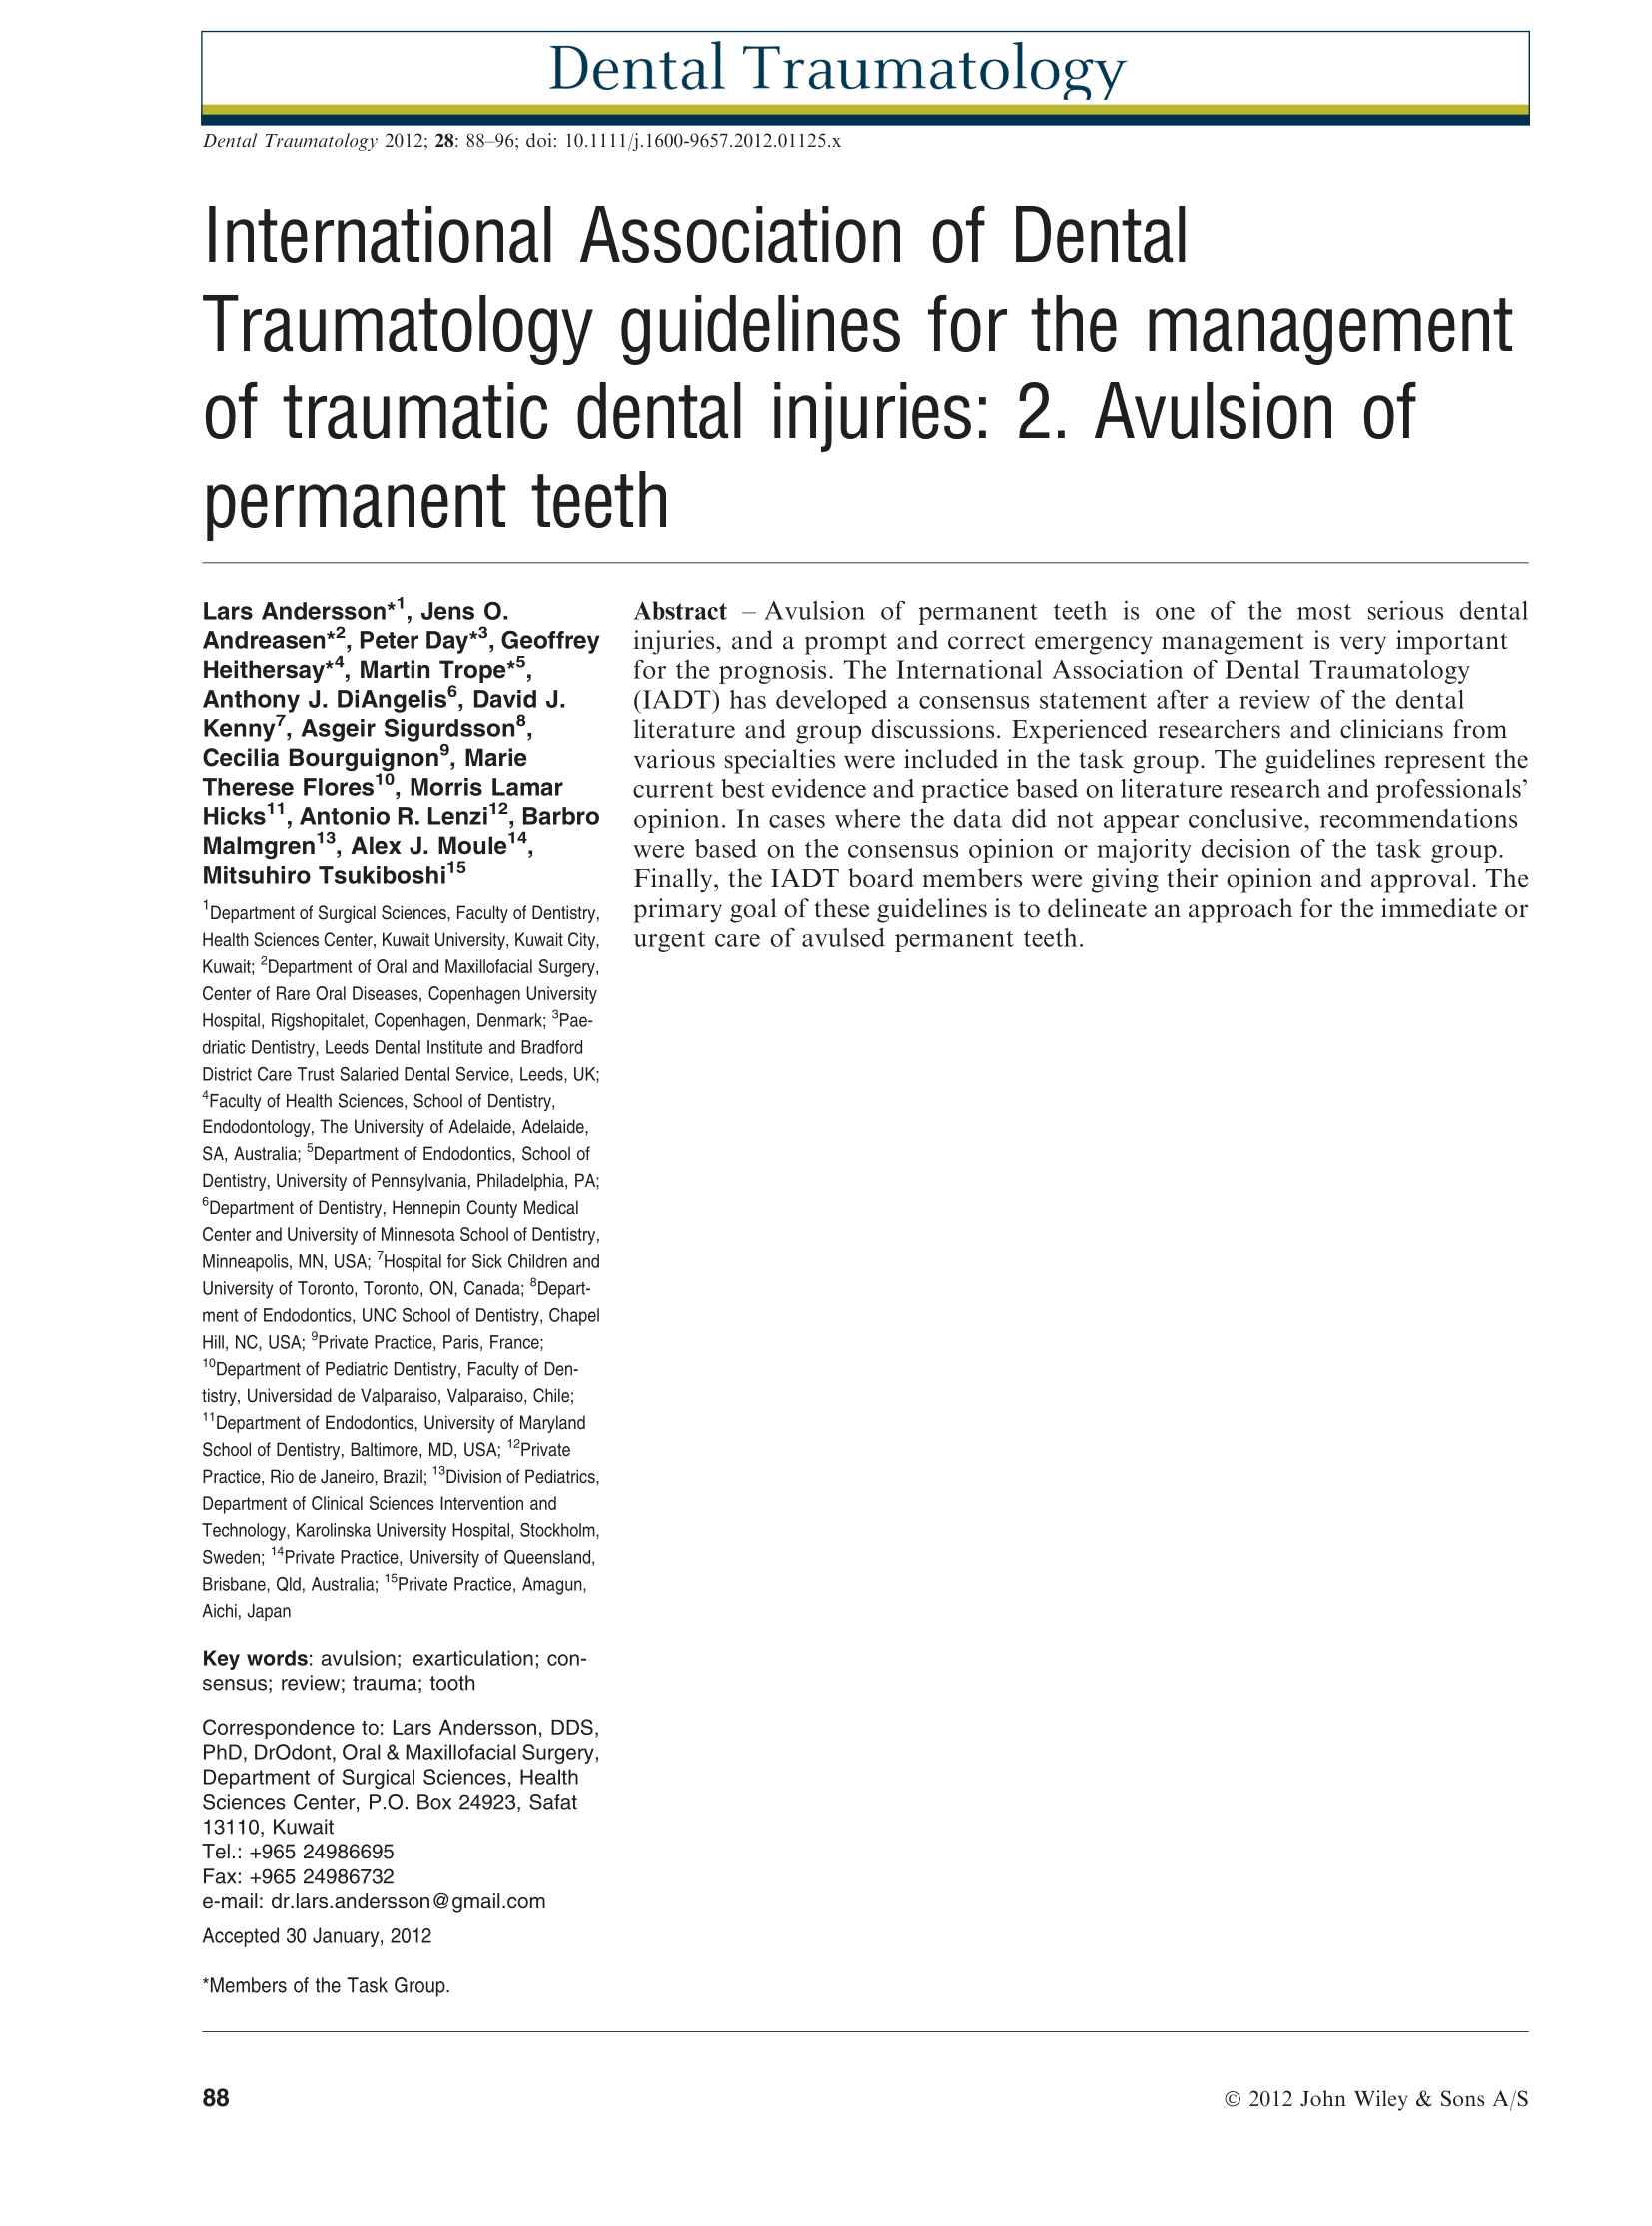 International Association of Dental Traumatology guidelines for the Management of Traumatic Dental Injuries: 2. Avulsion of Permanent Teeth.